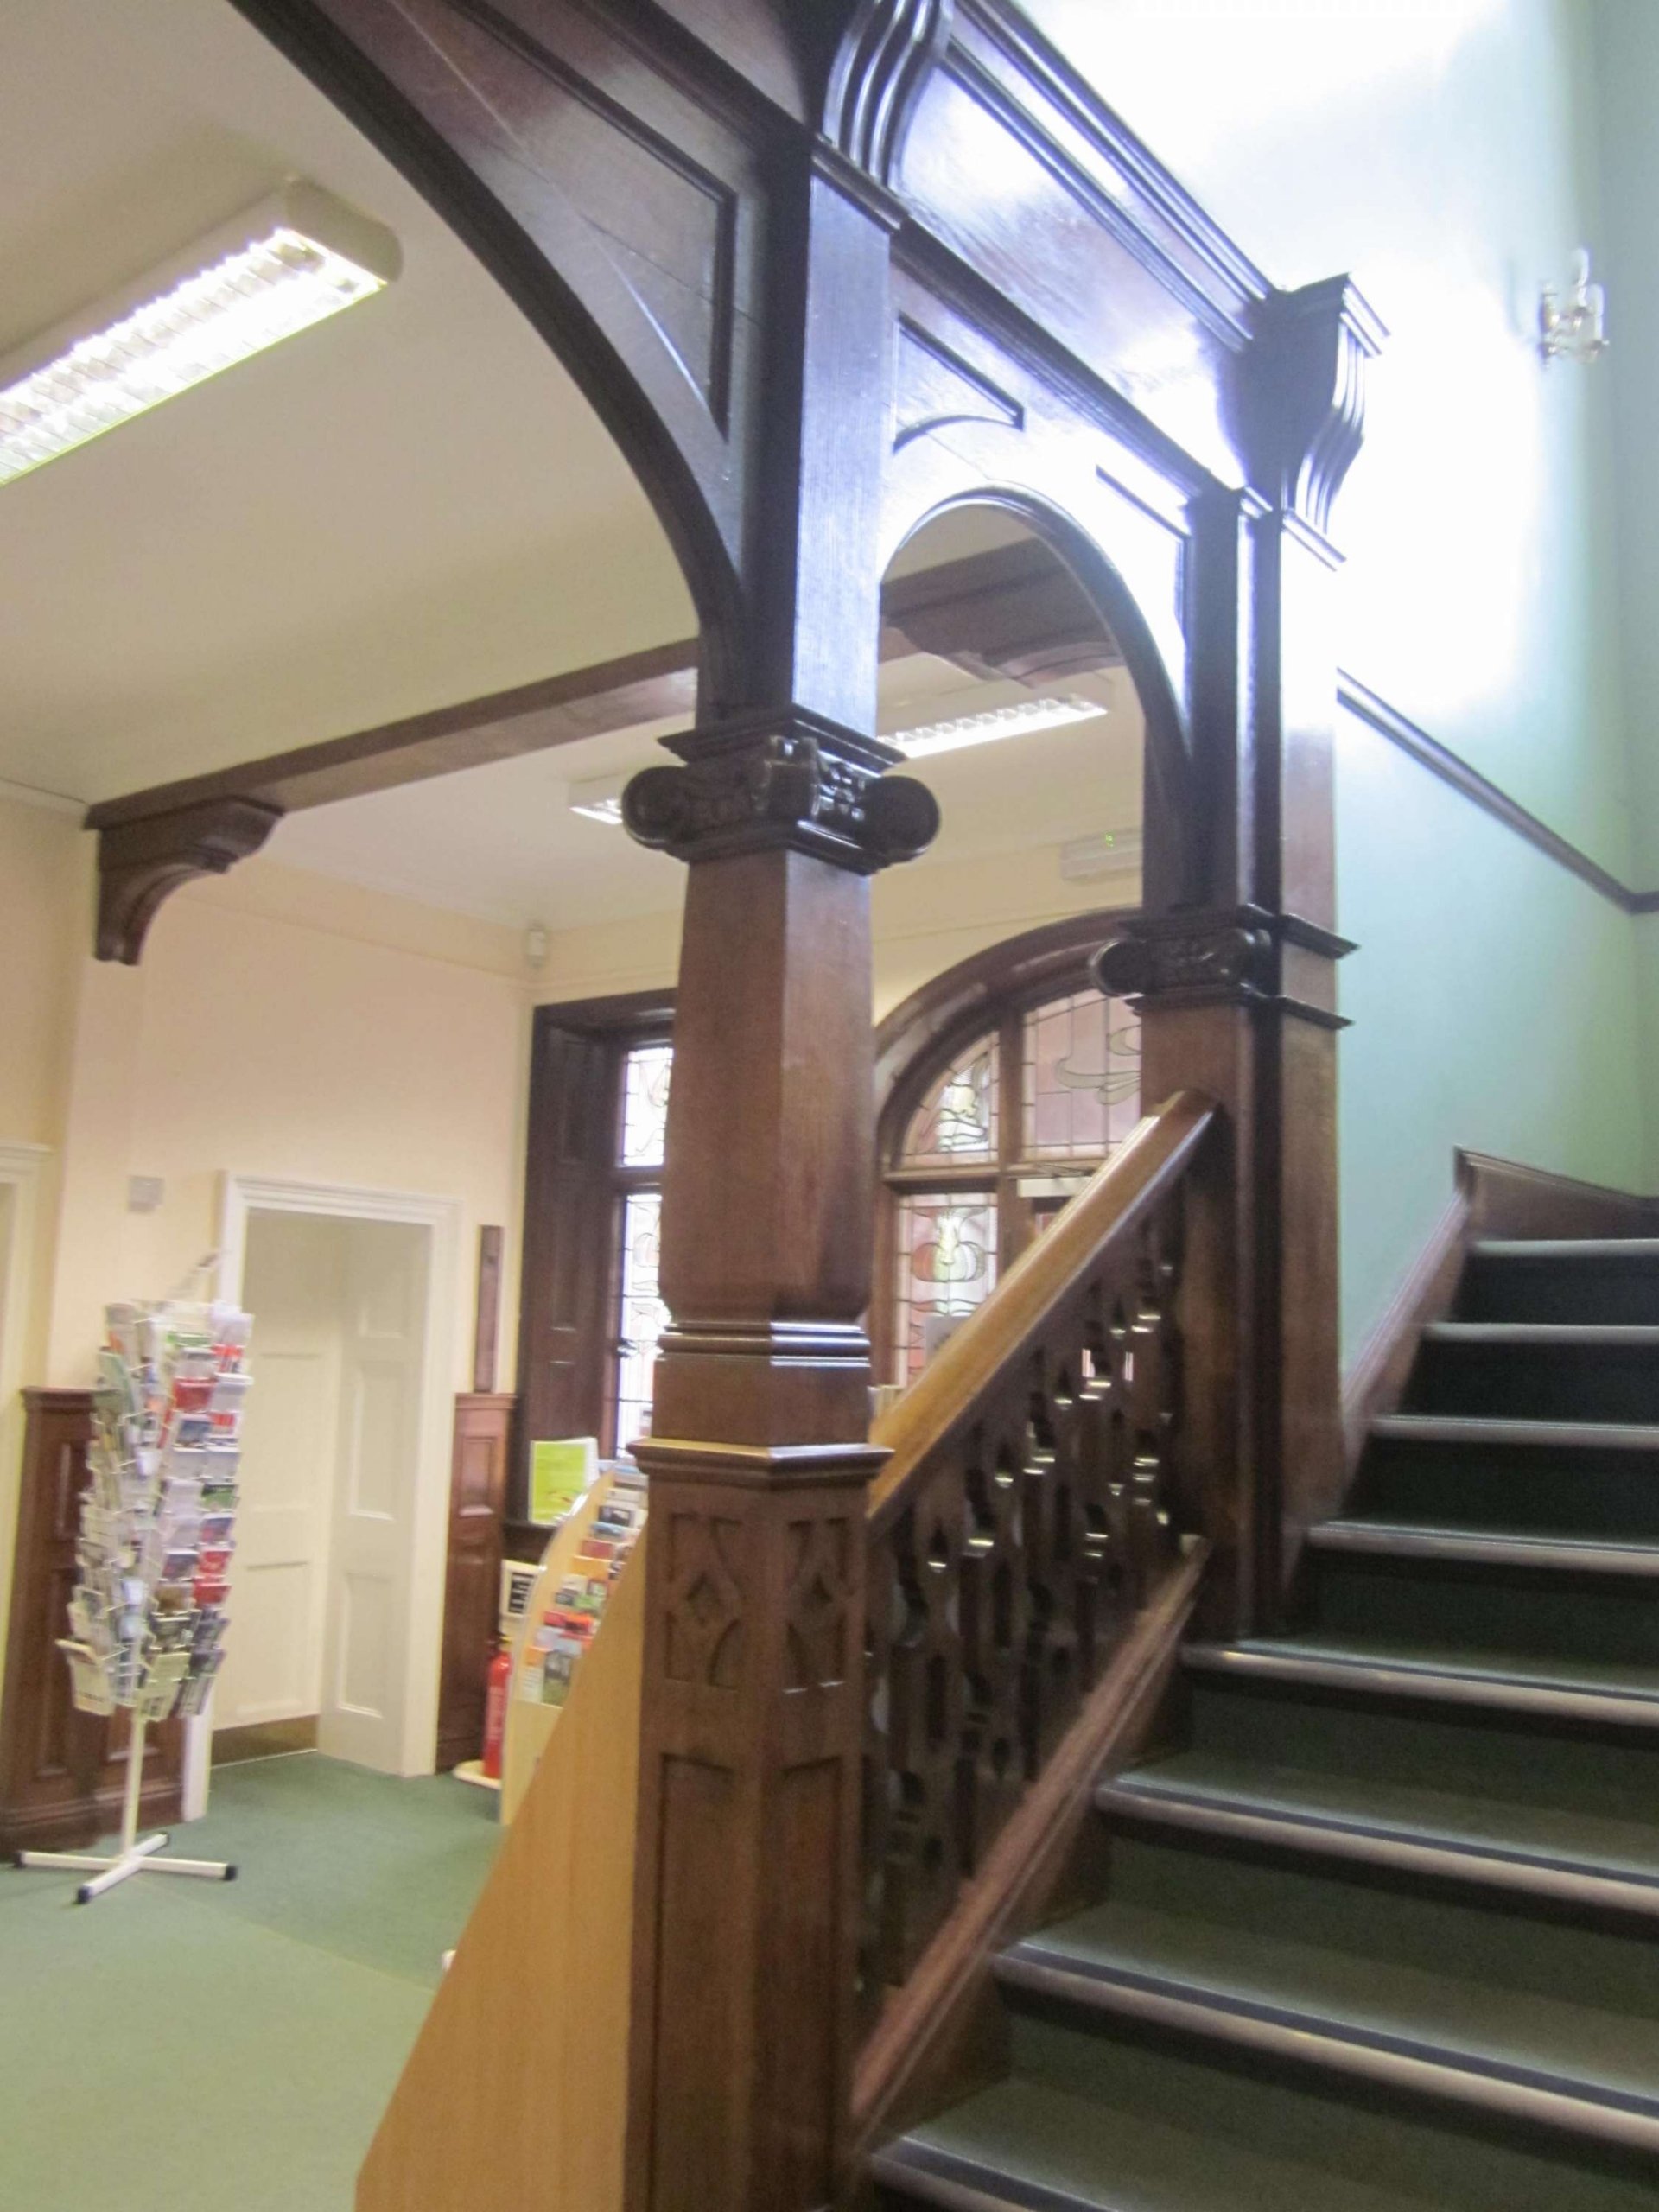 Fig.2 Entrance hall and staircase